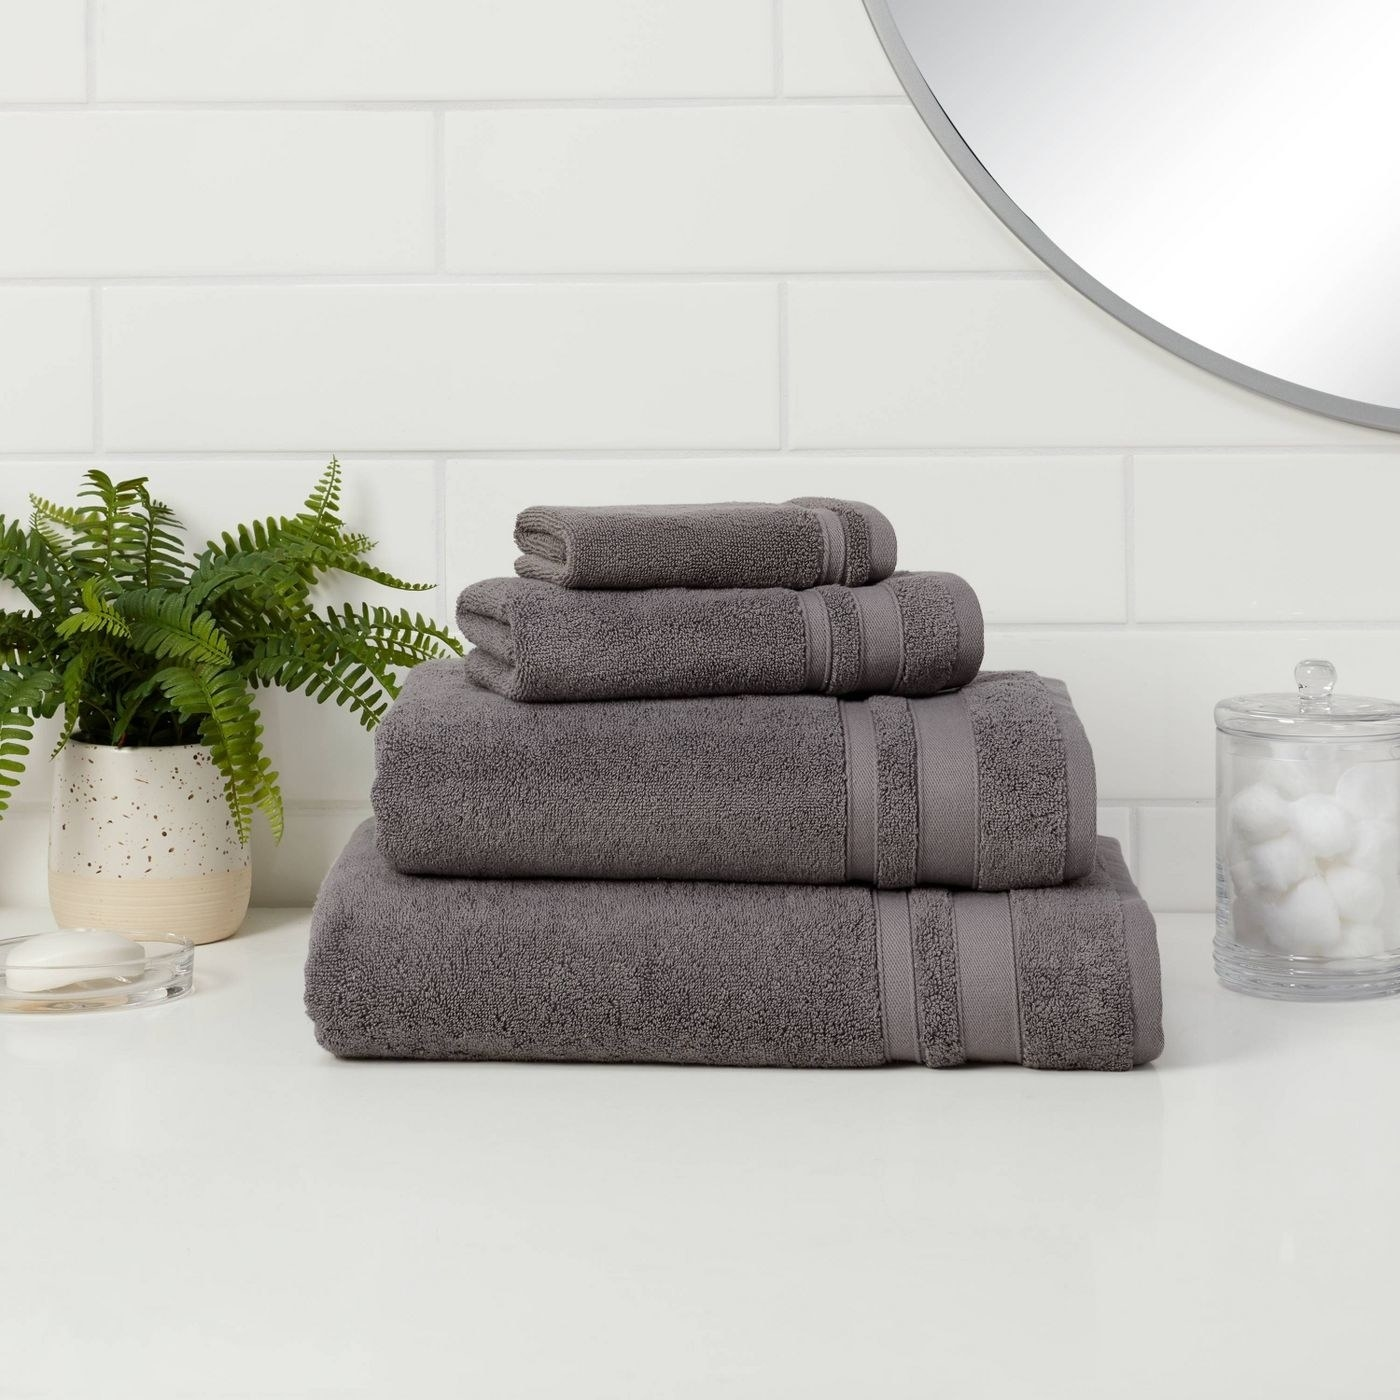 A set of grey bath towels in a home